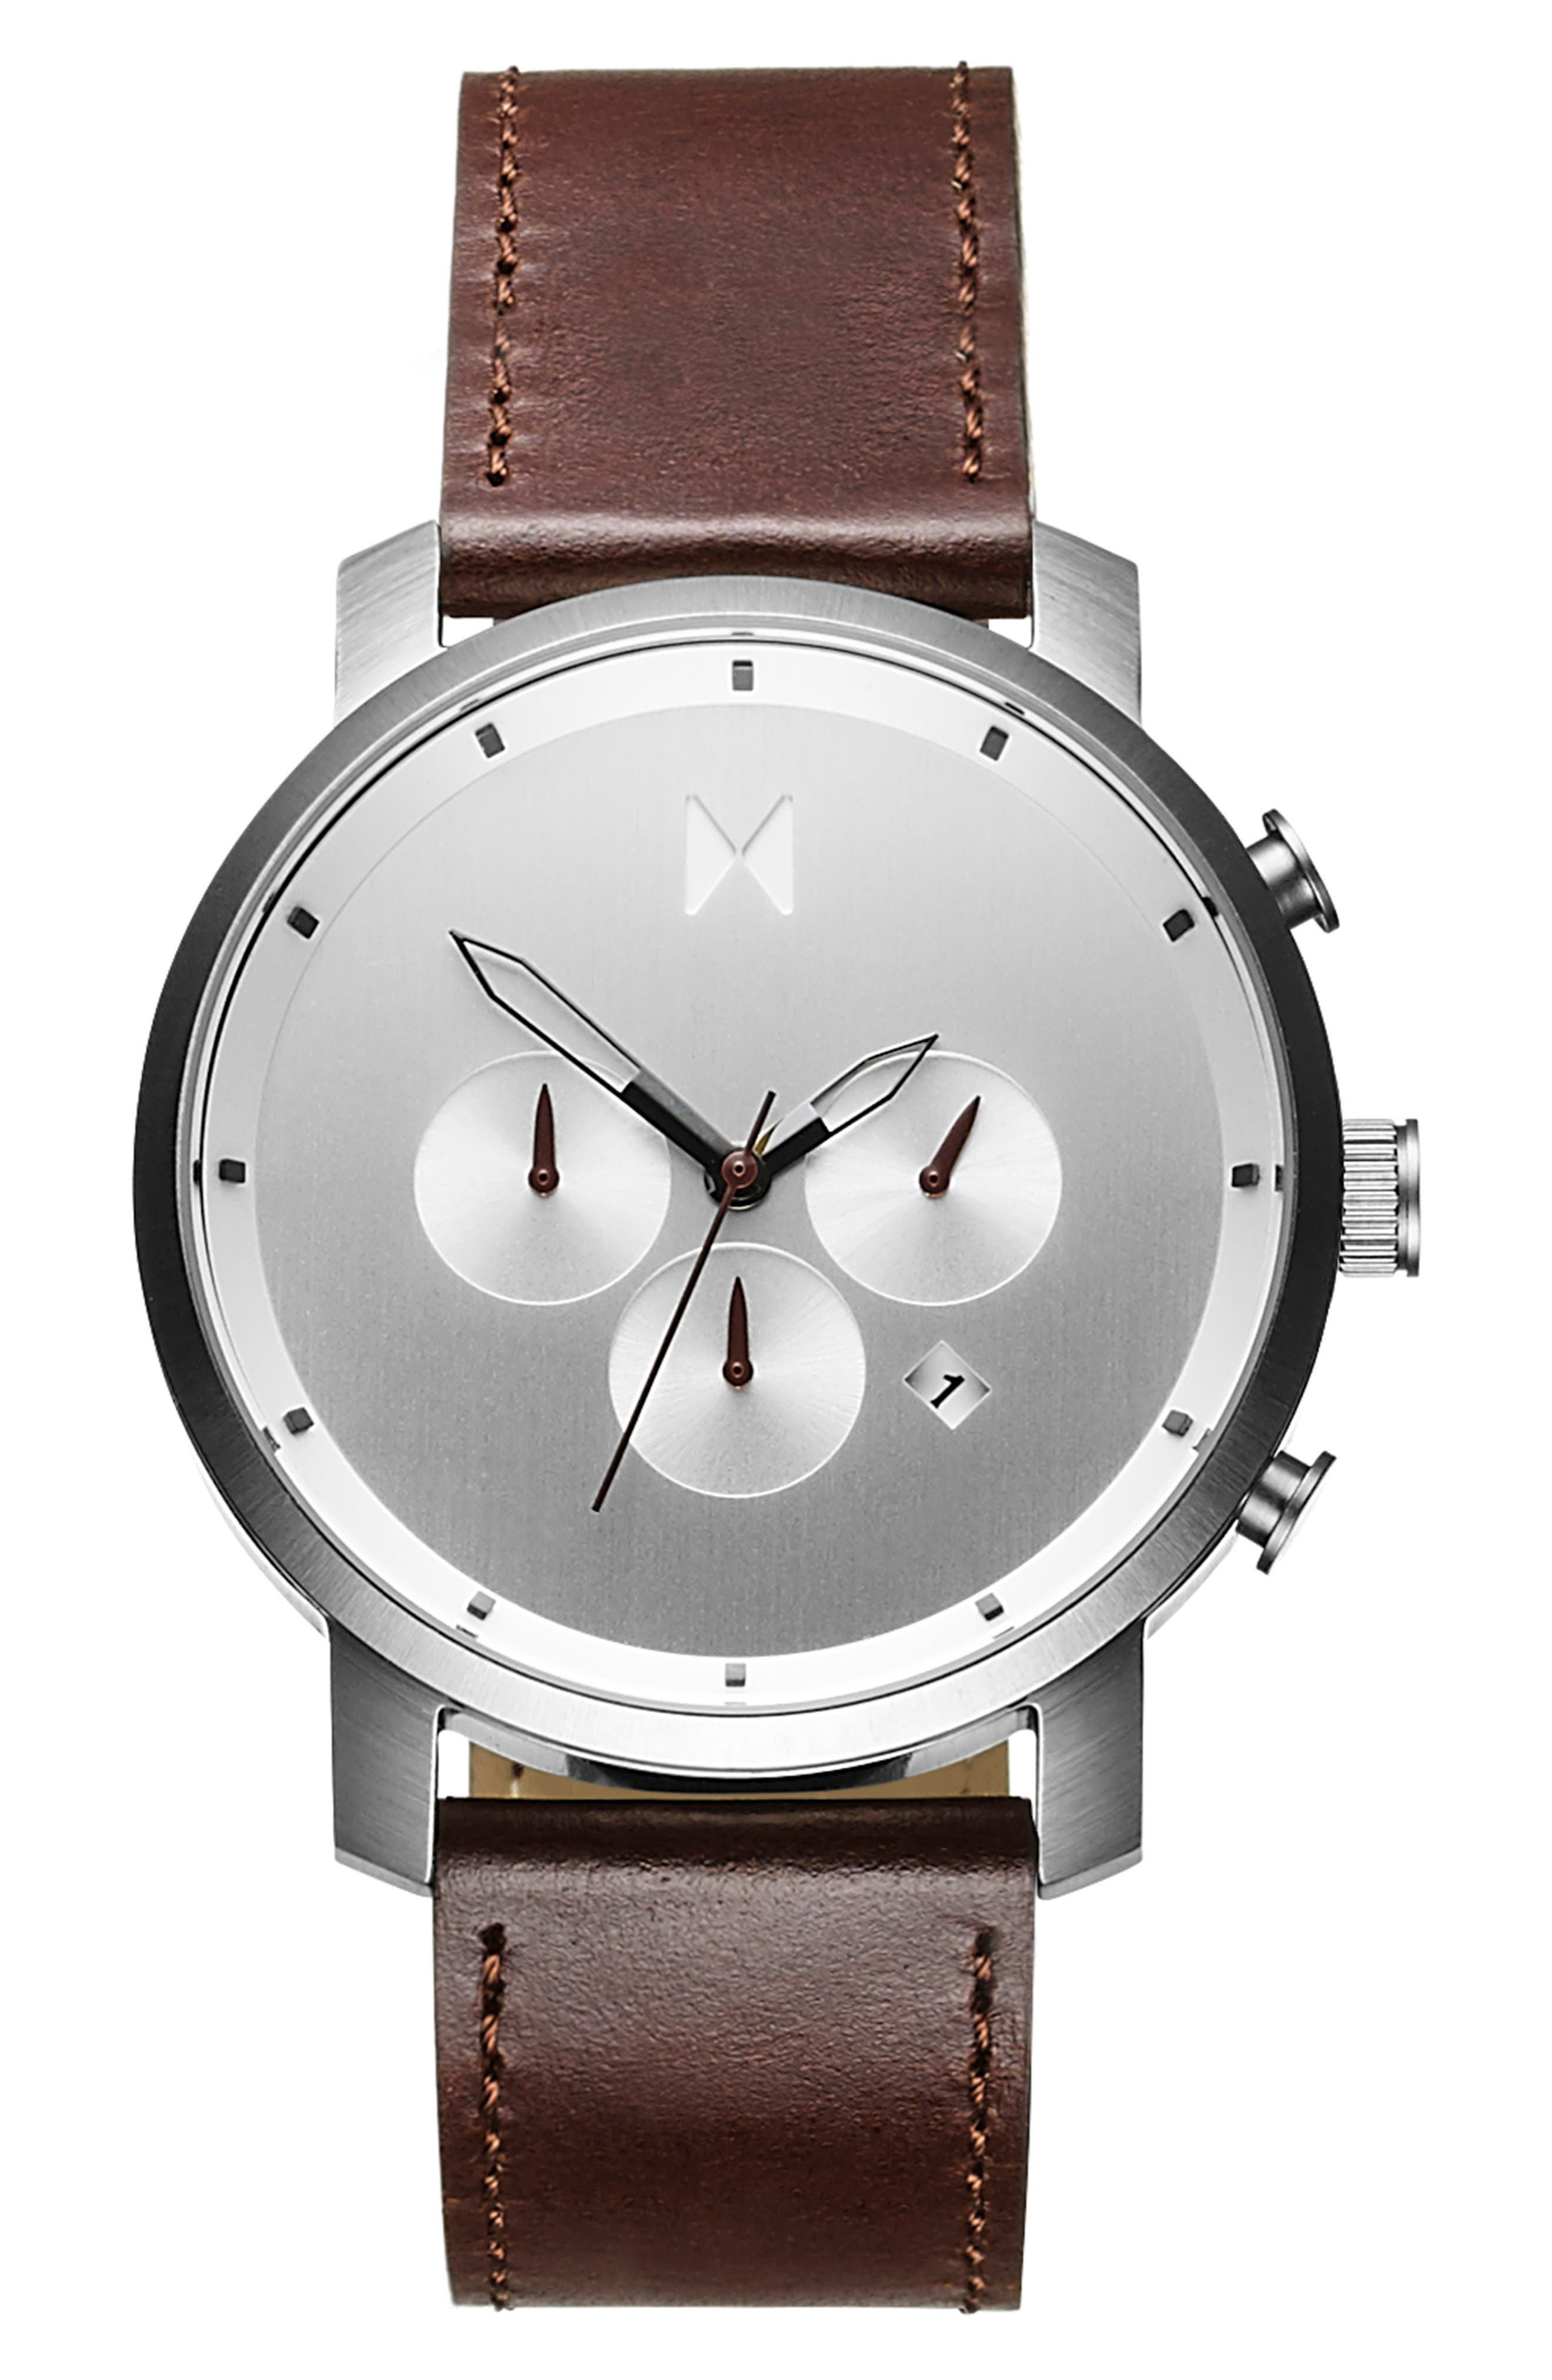 The Chrono Chronograph Leather Strap Watch